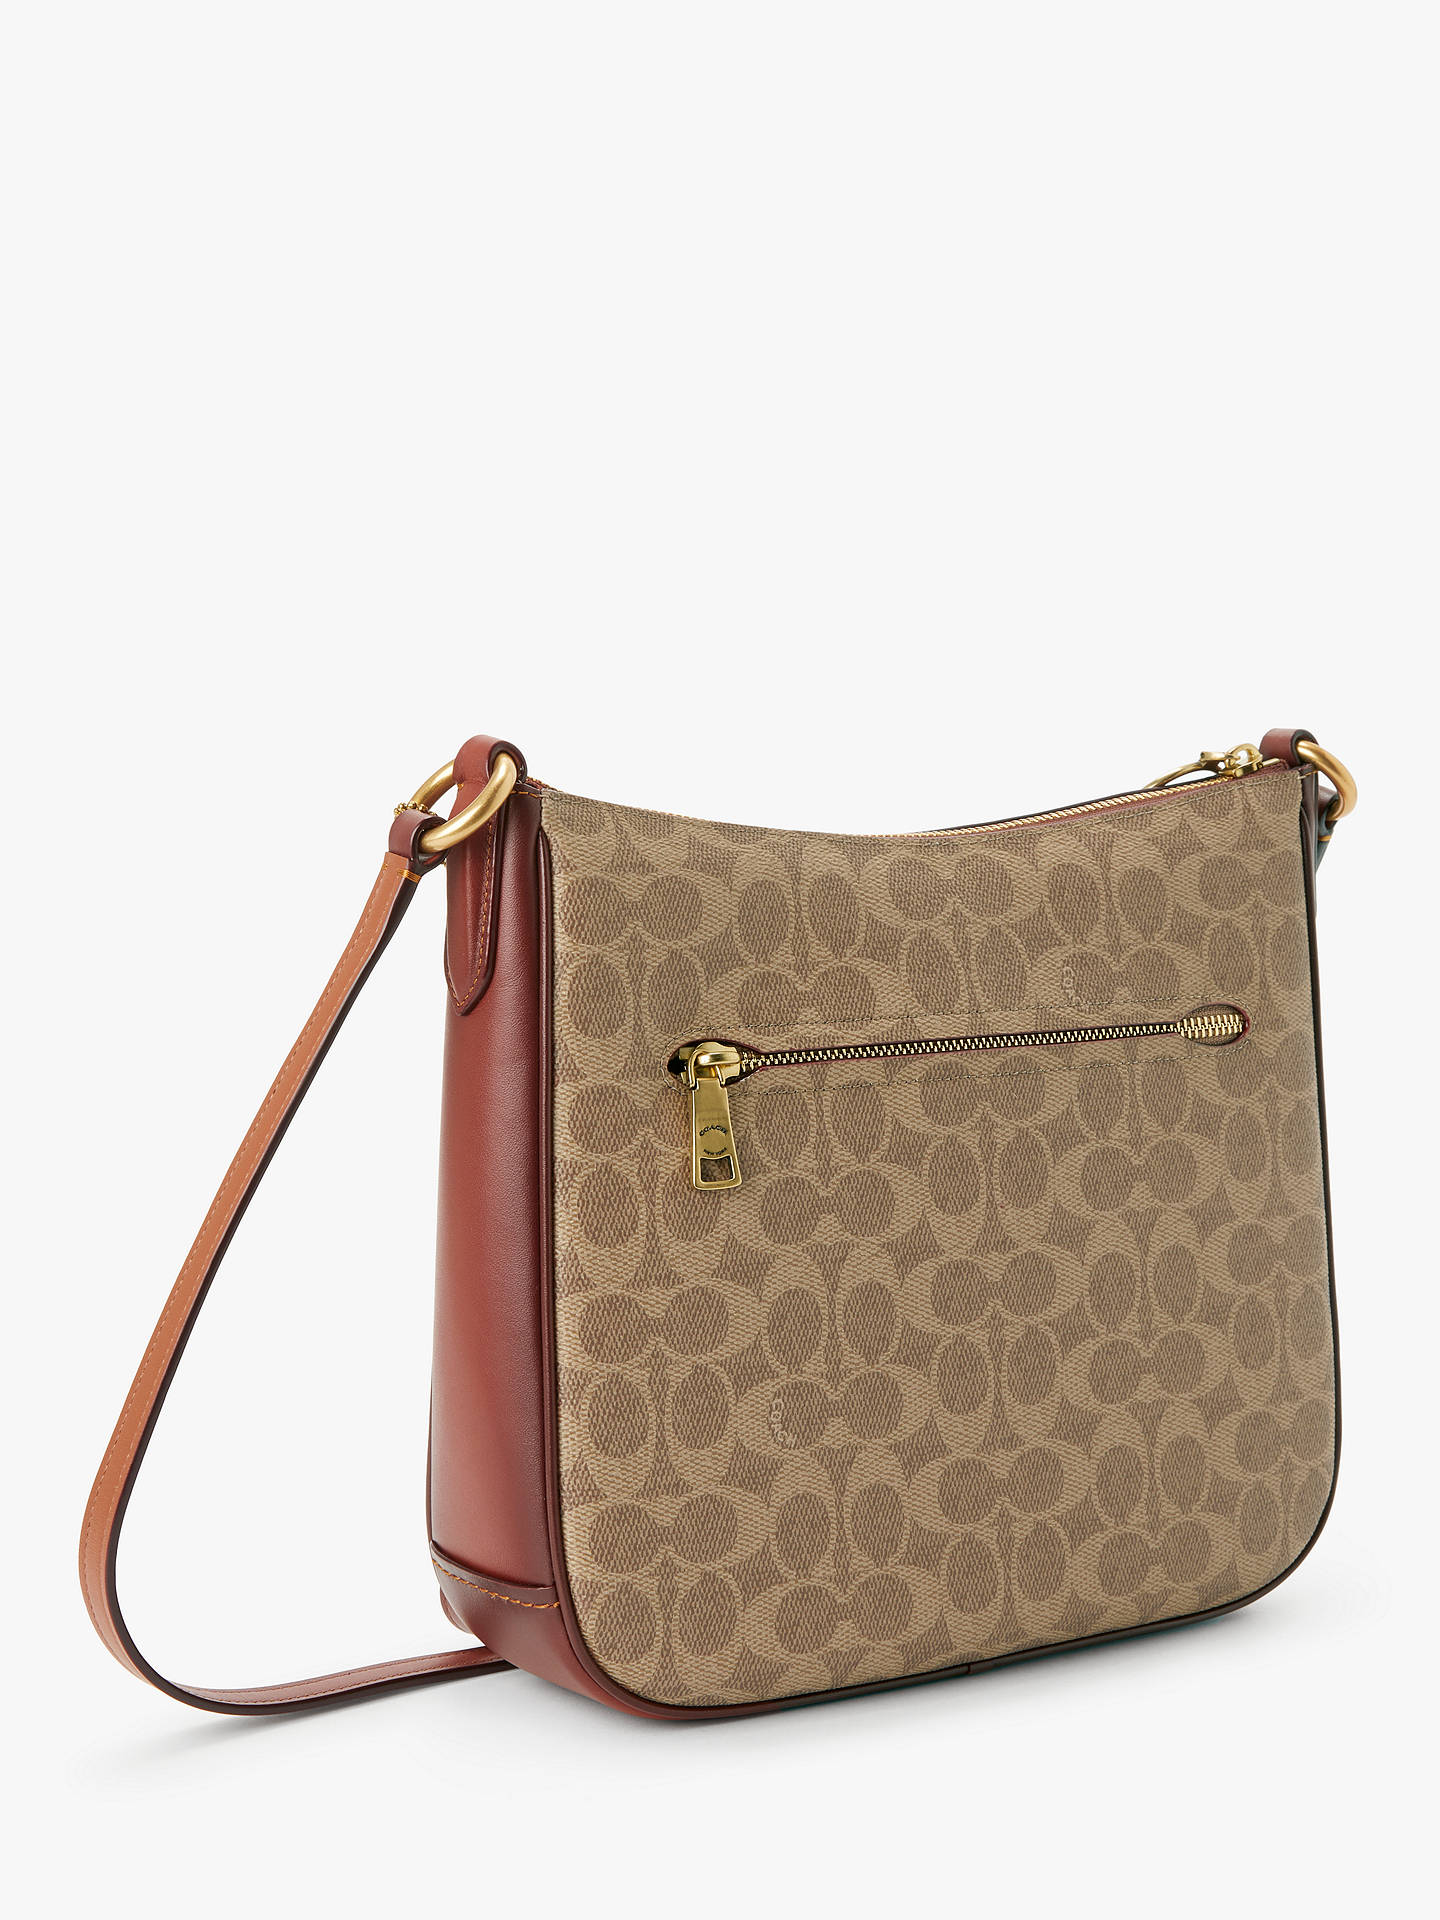 d954ee5236c7 ... Buy Coach Signature Chaise Cross Body Bag